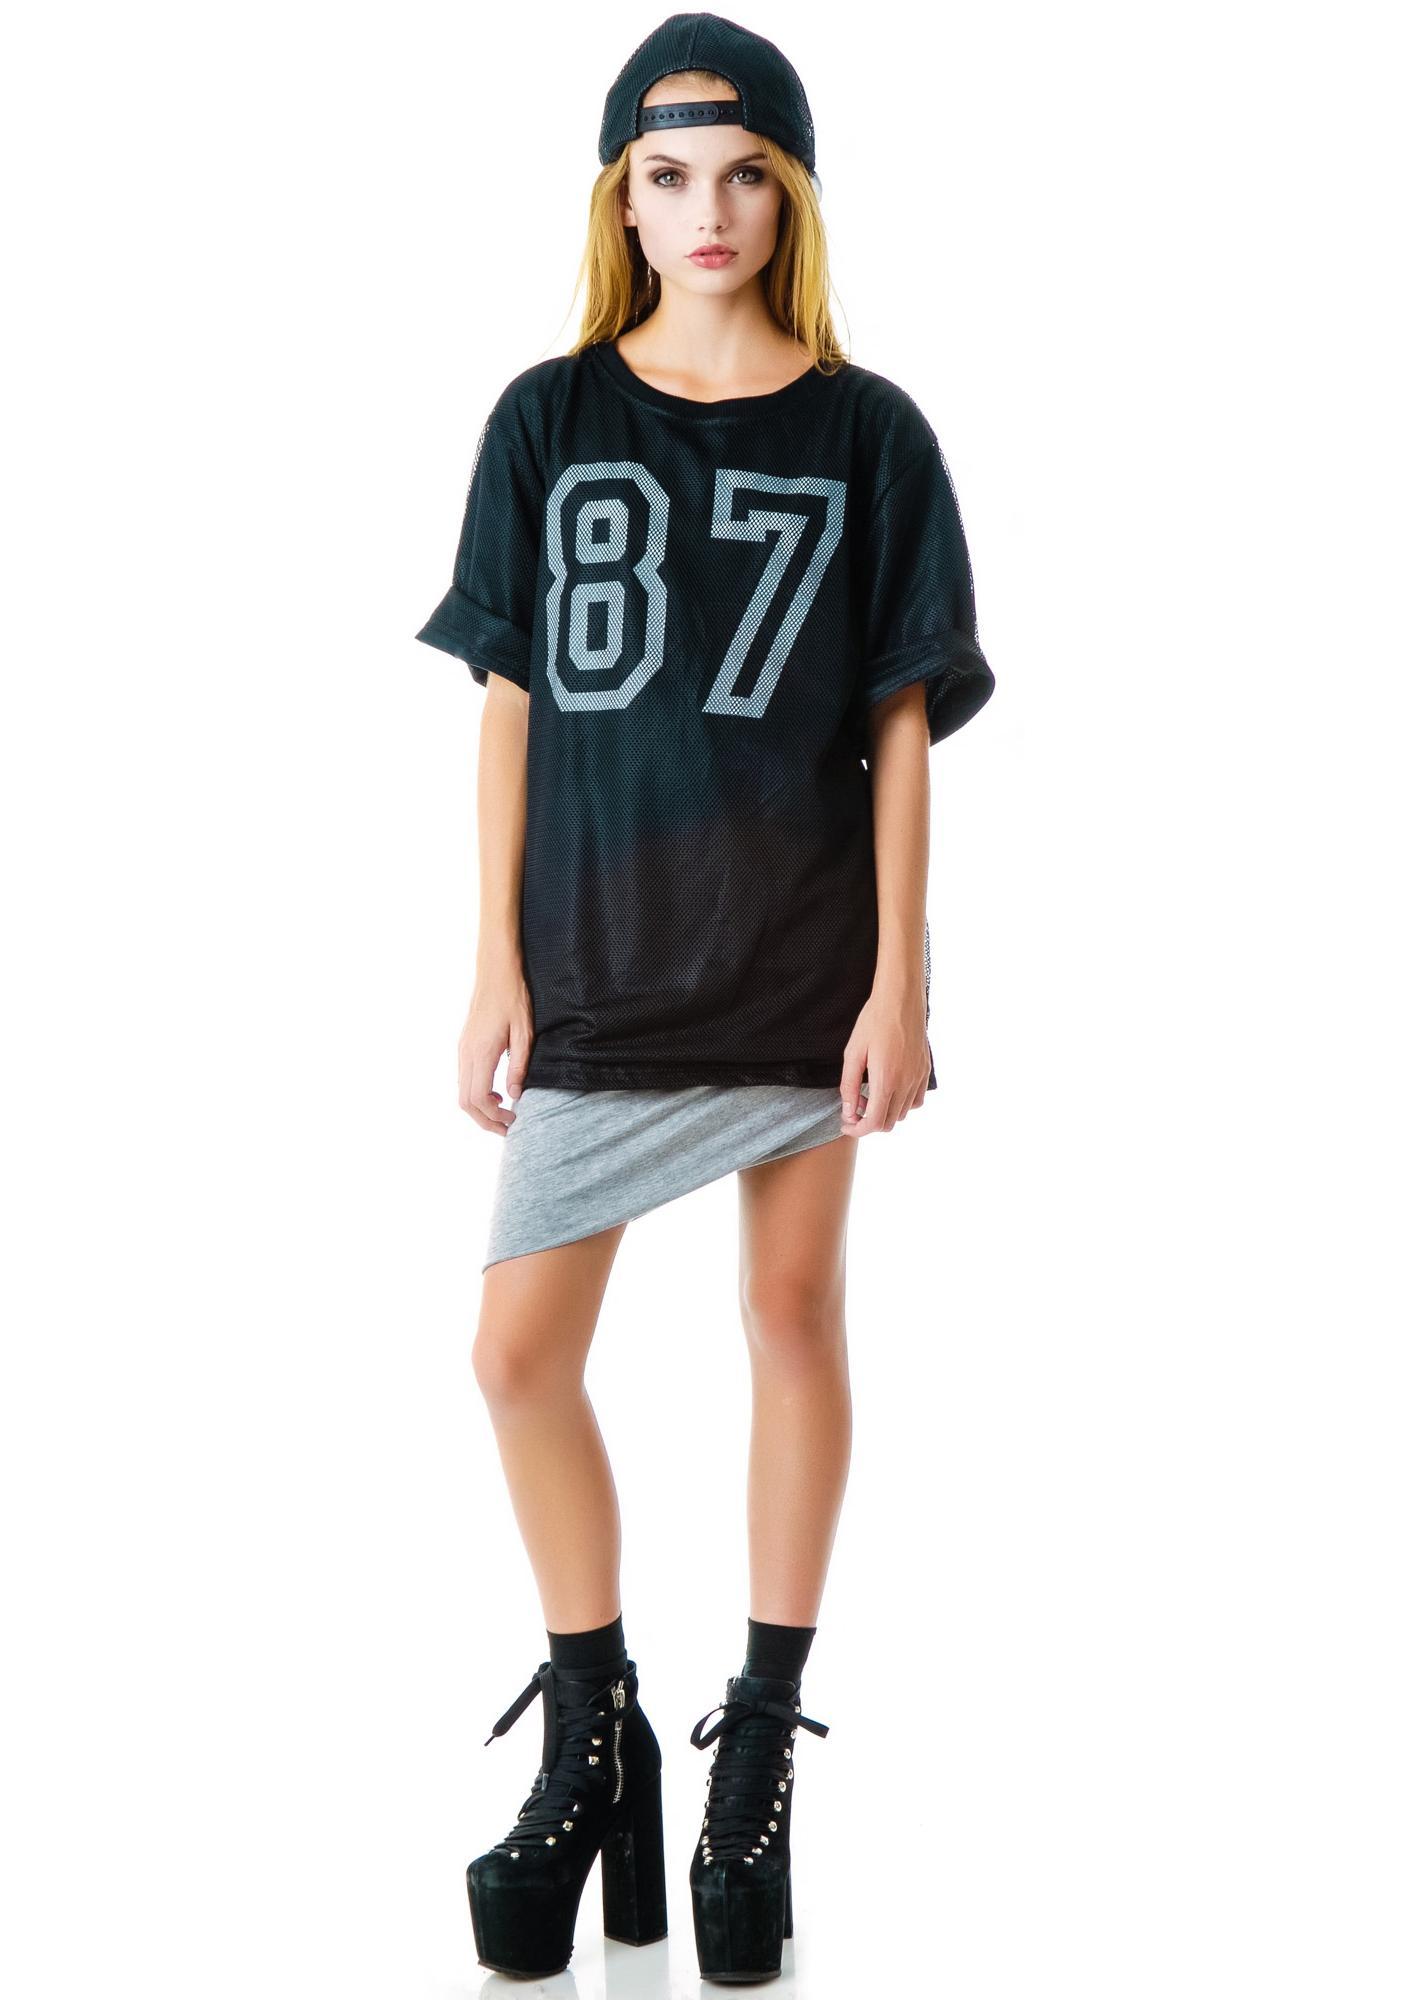 This Is A Love Song Bad 87 Jersey